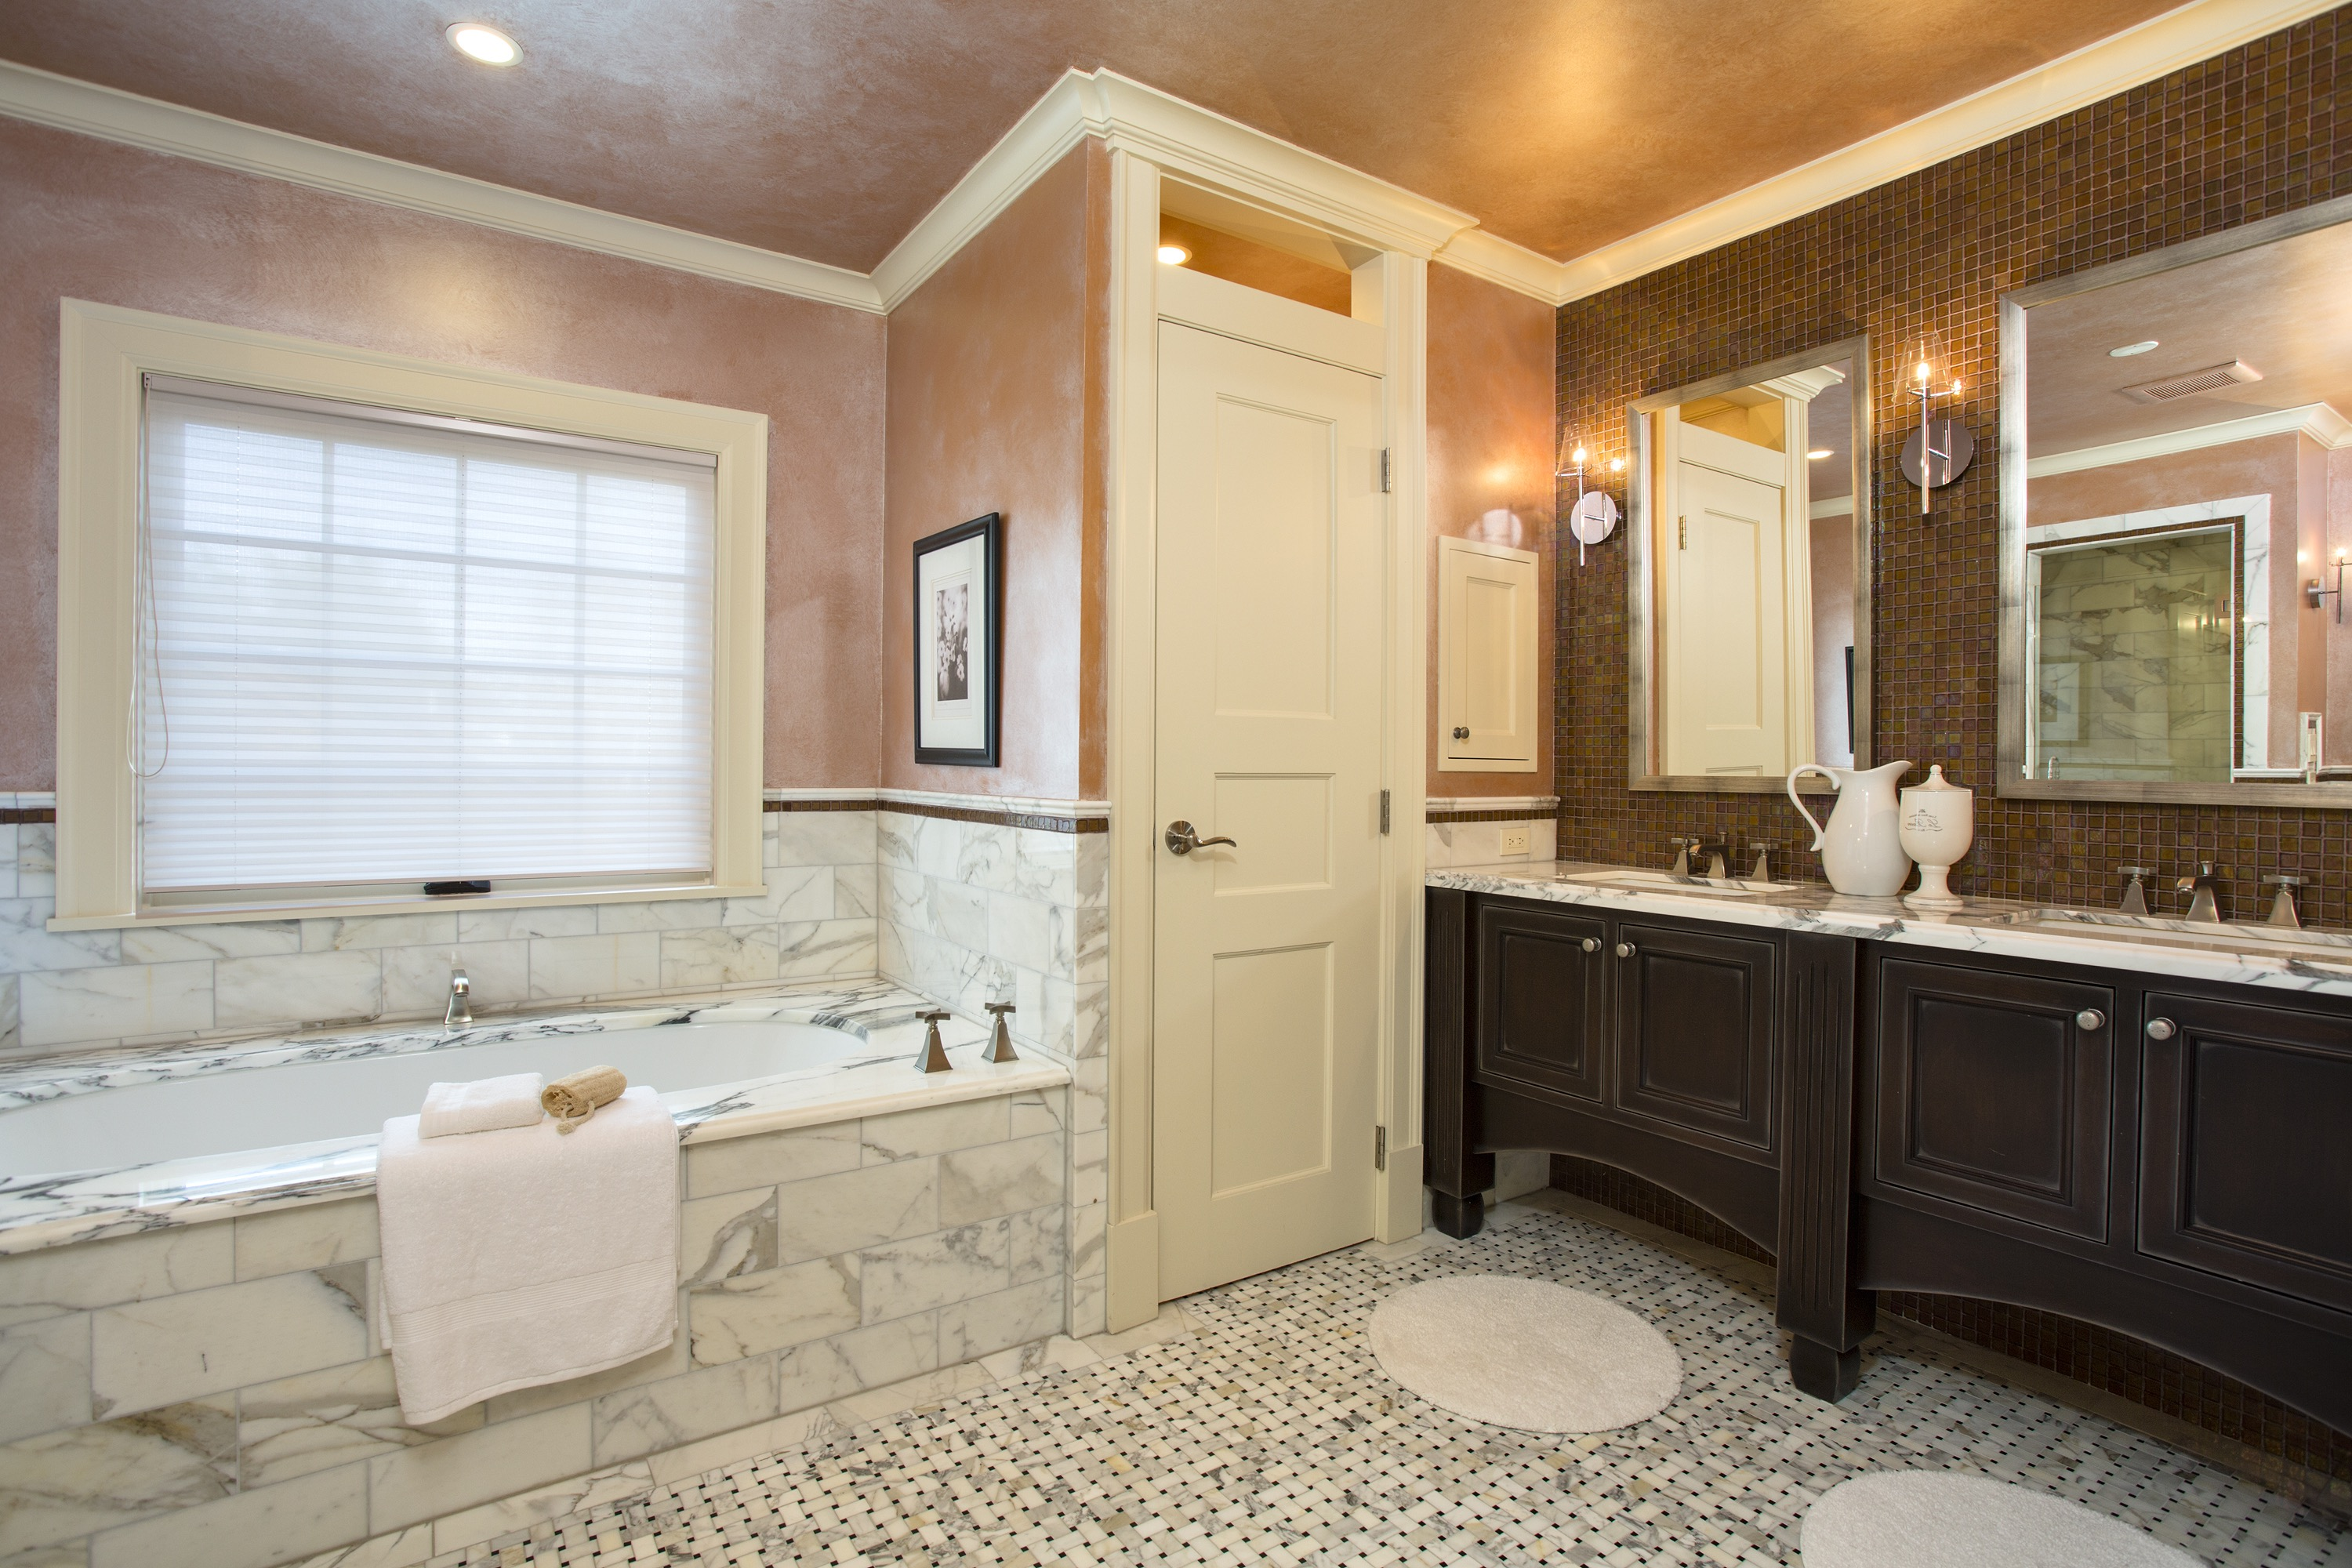 Classic Bathroom Design Classic Bathroom Interior Design In Elegant Look 15033 Bathroom